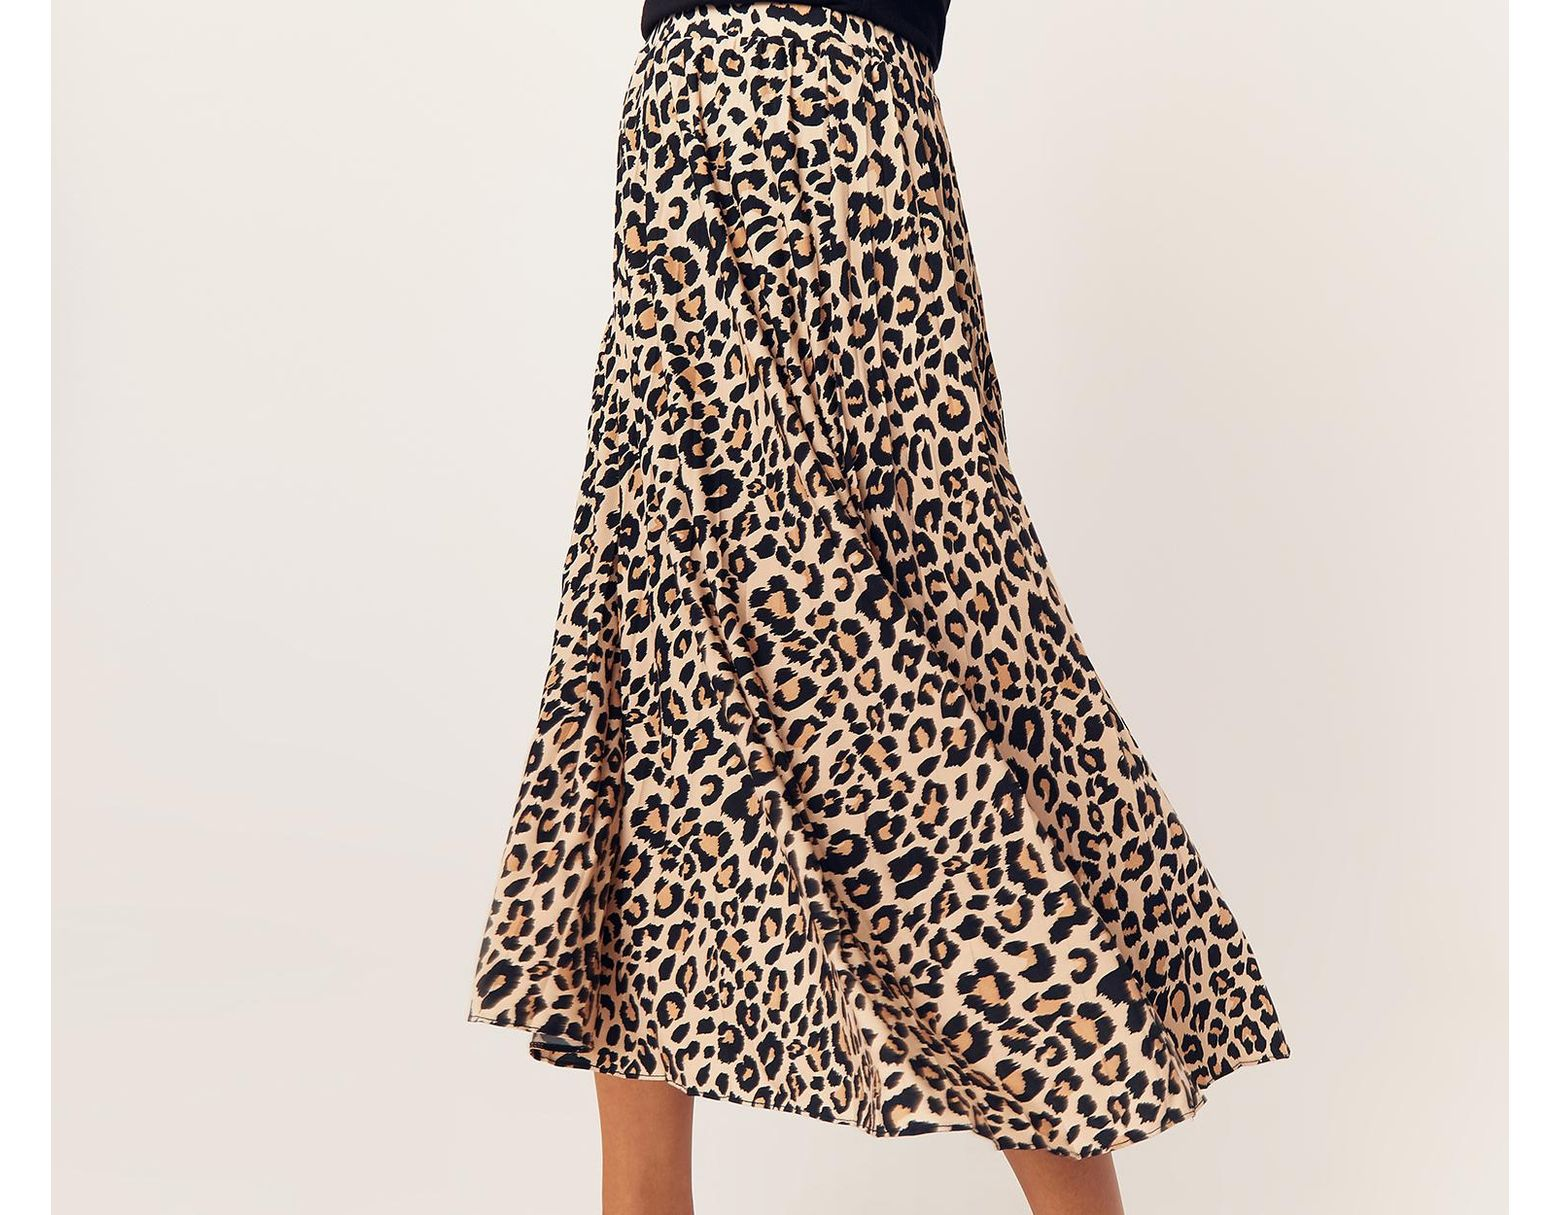 9fce4706d08c Oasis Leopard Pleated Skirt - Lyst